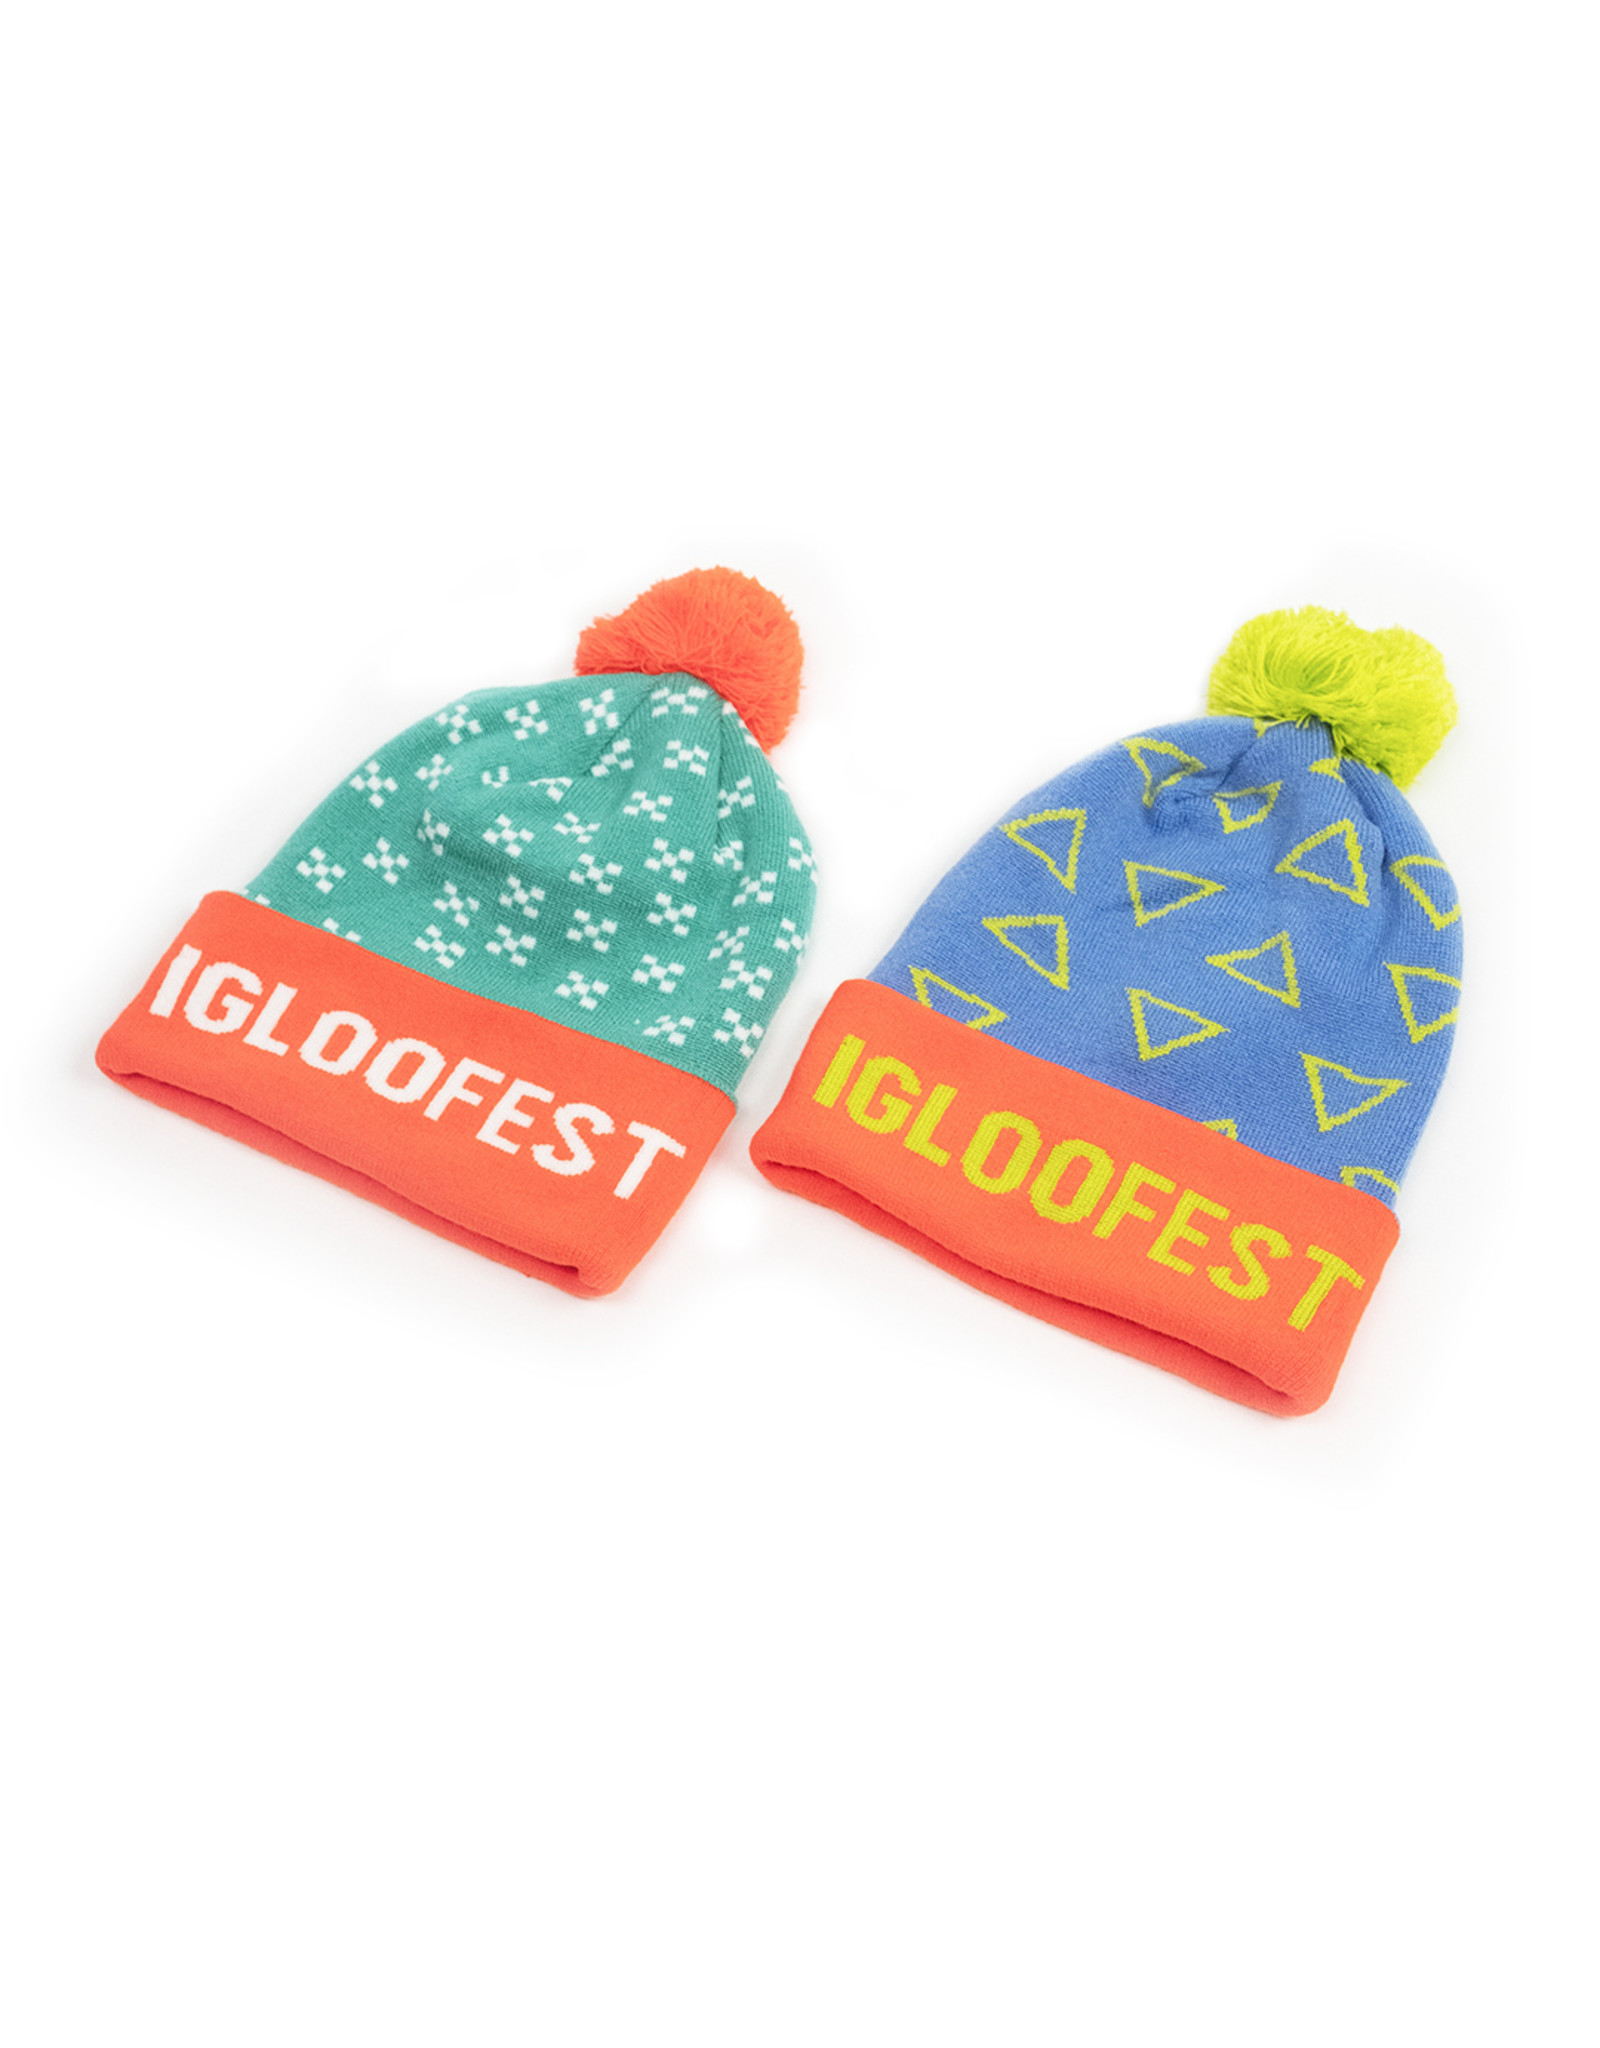 Igloofest Triangle Tricolore | Collection 2016